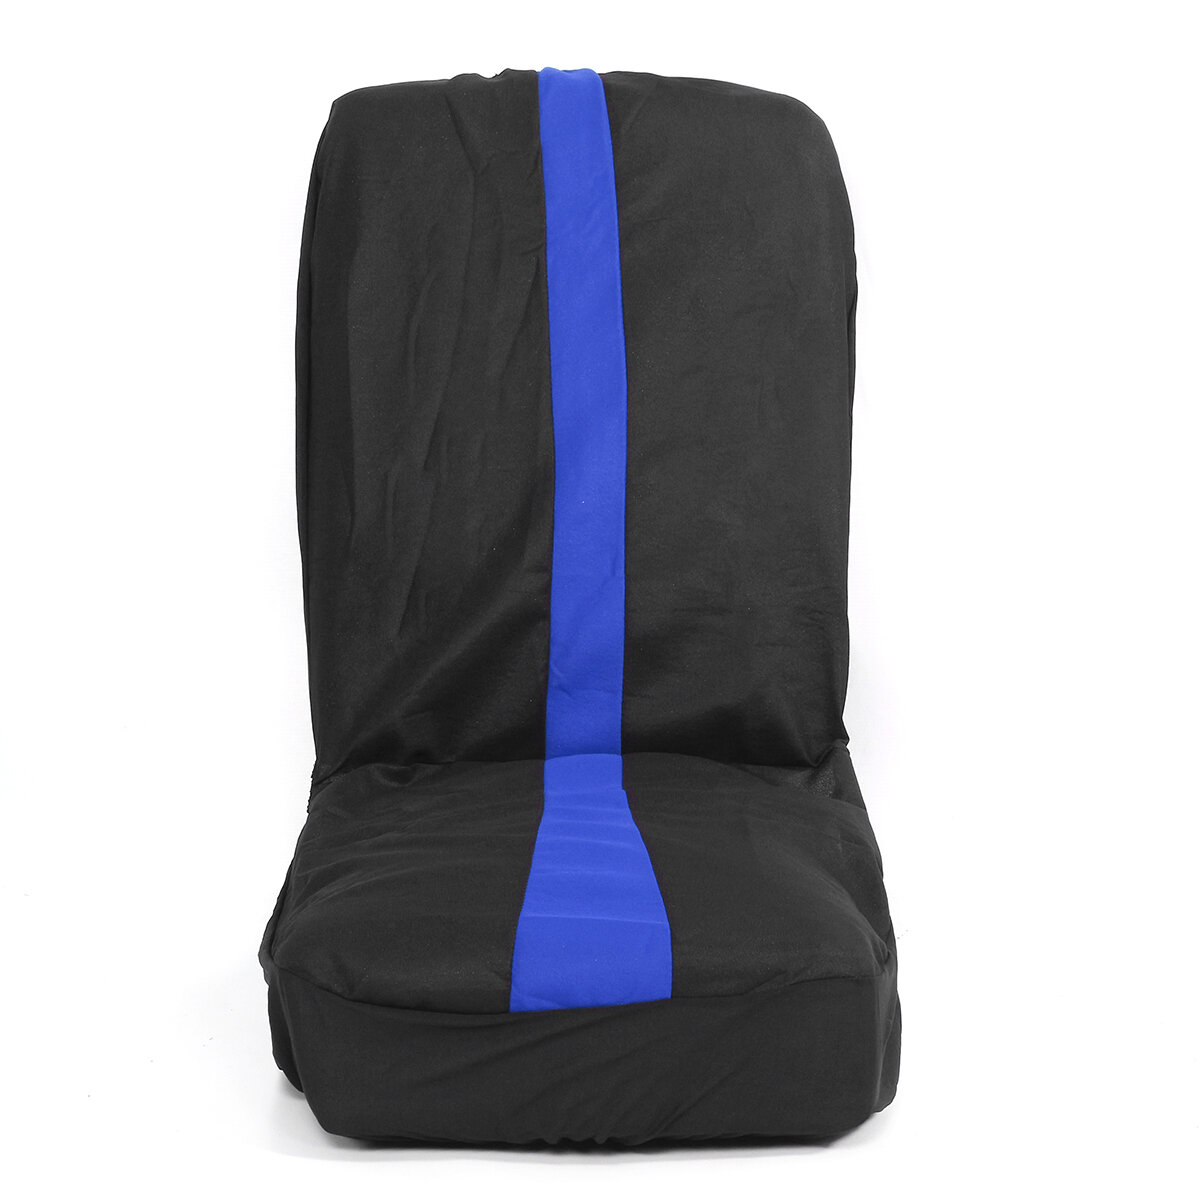 8Pcs Polyester Fabric Car Front and Back Seat Cover Cushion Protector Universal for Five Seats Car